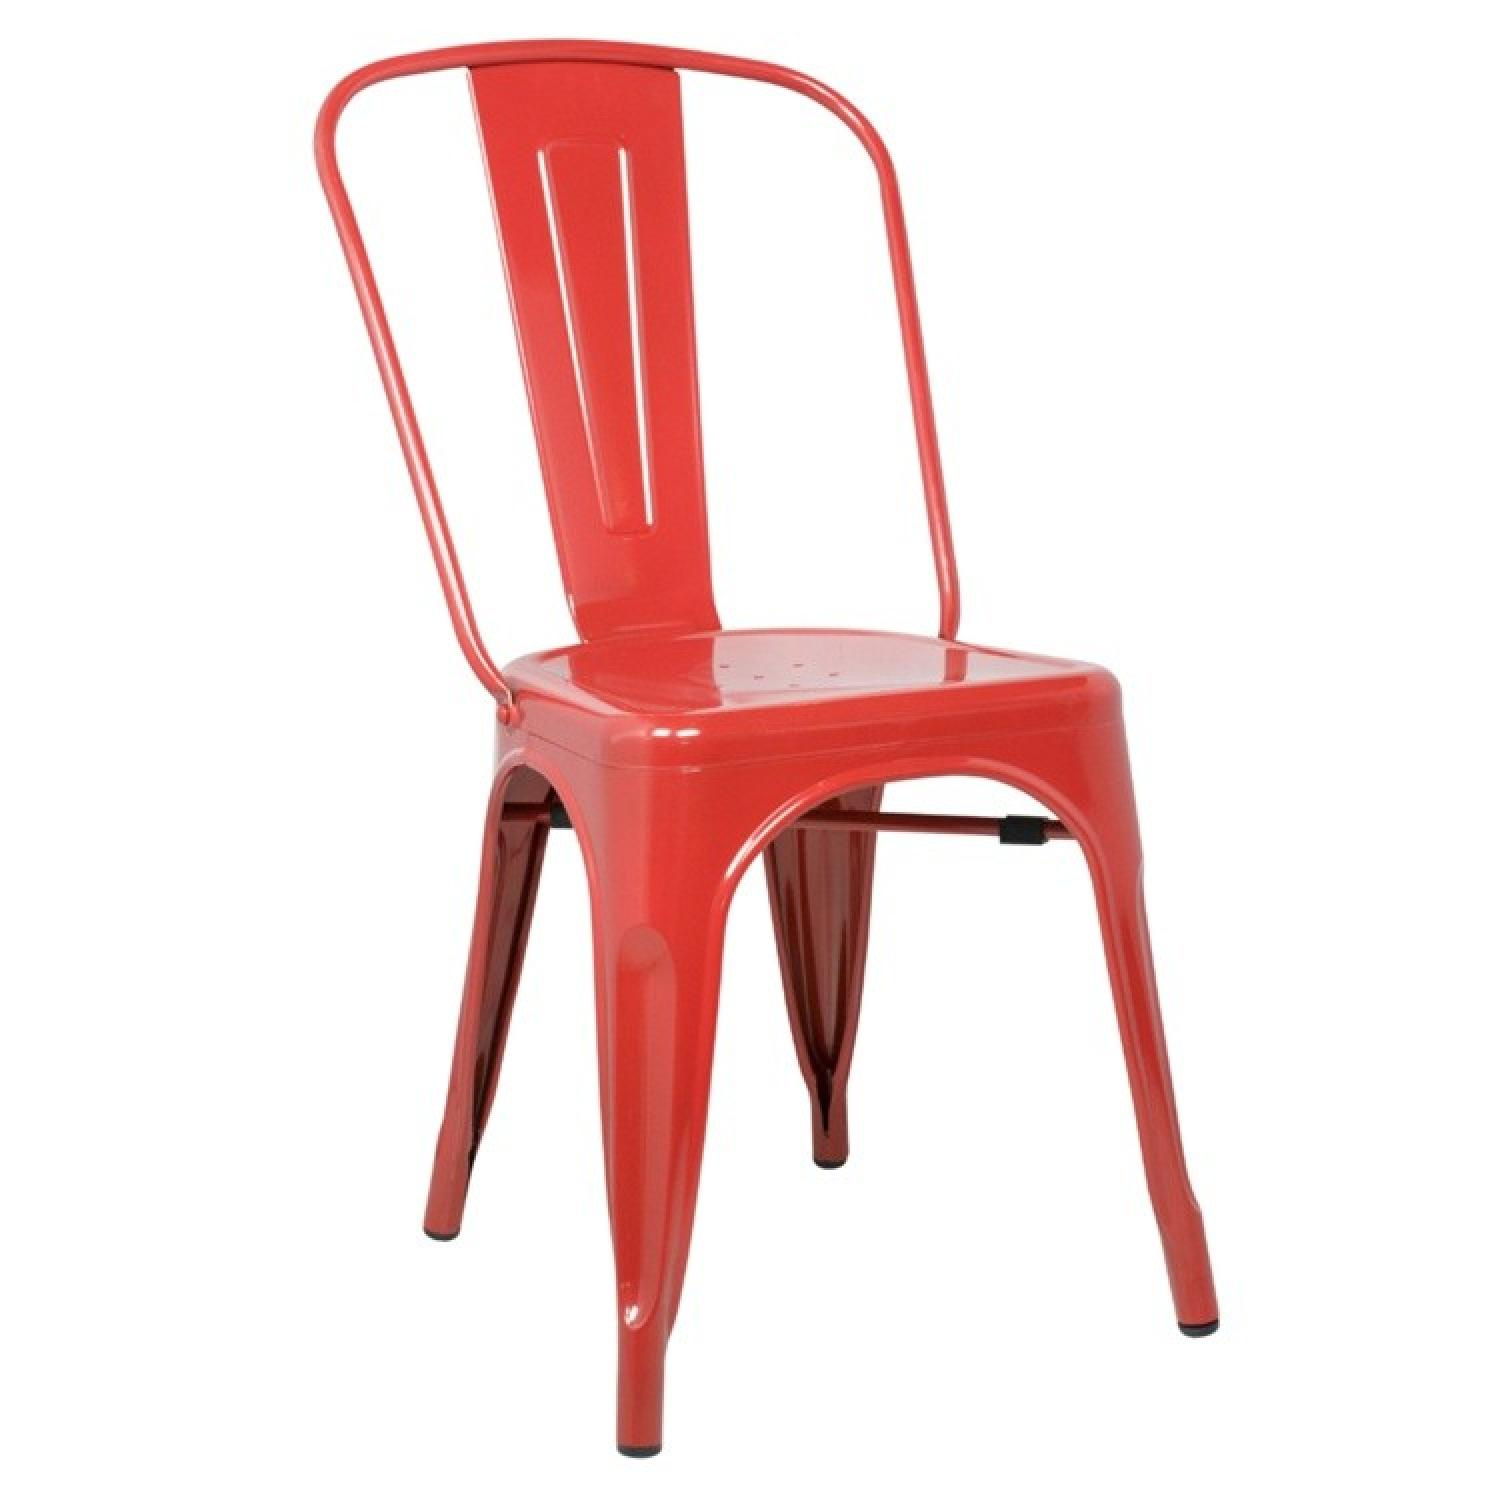 Classic Style Stackable Indoor/Outdoor Steel Chair In Red Fi